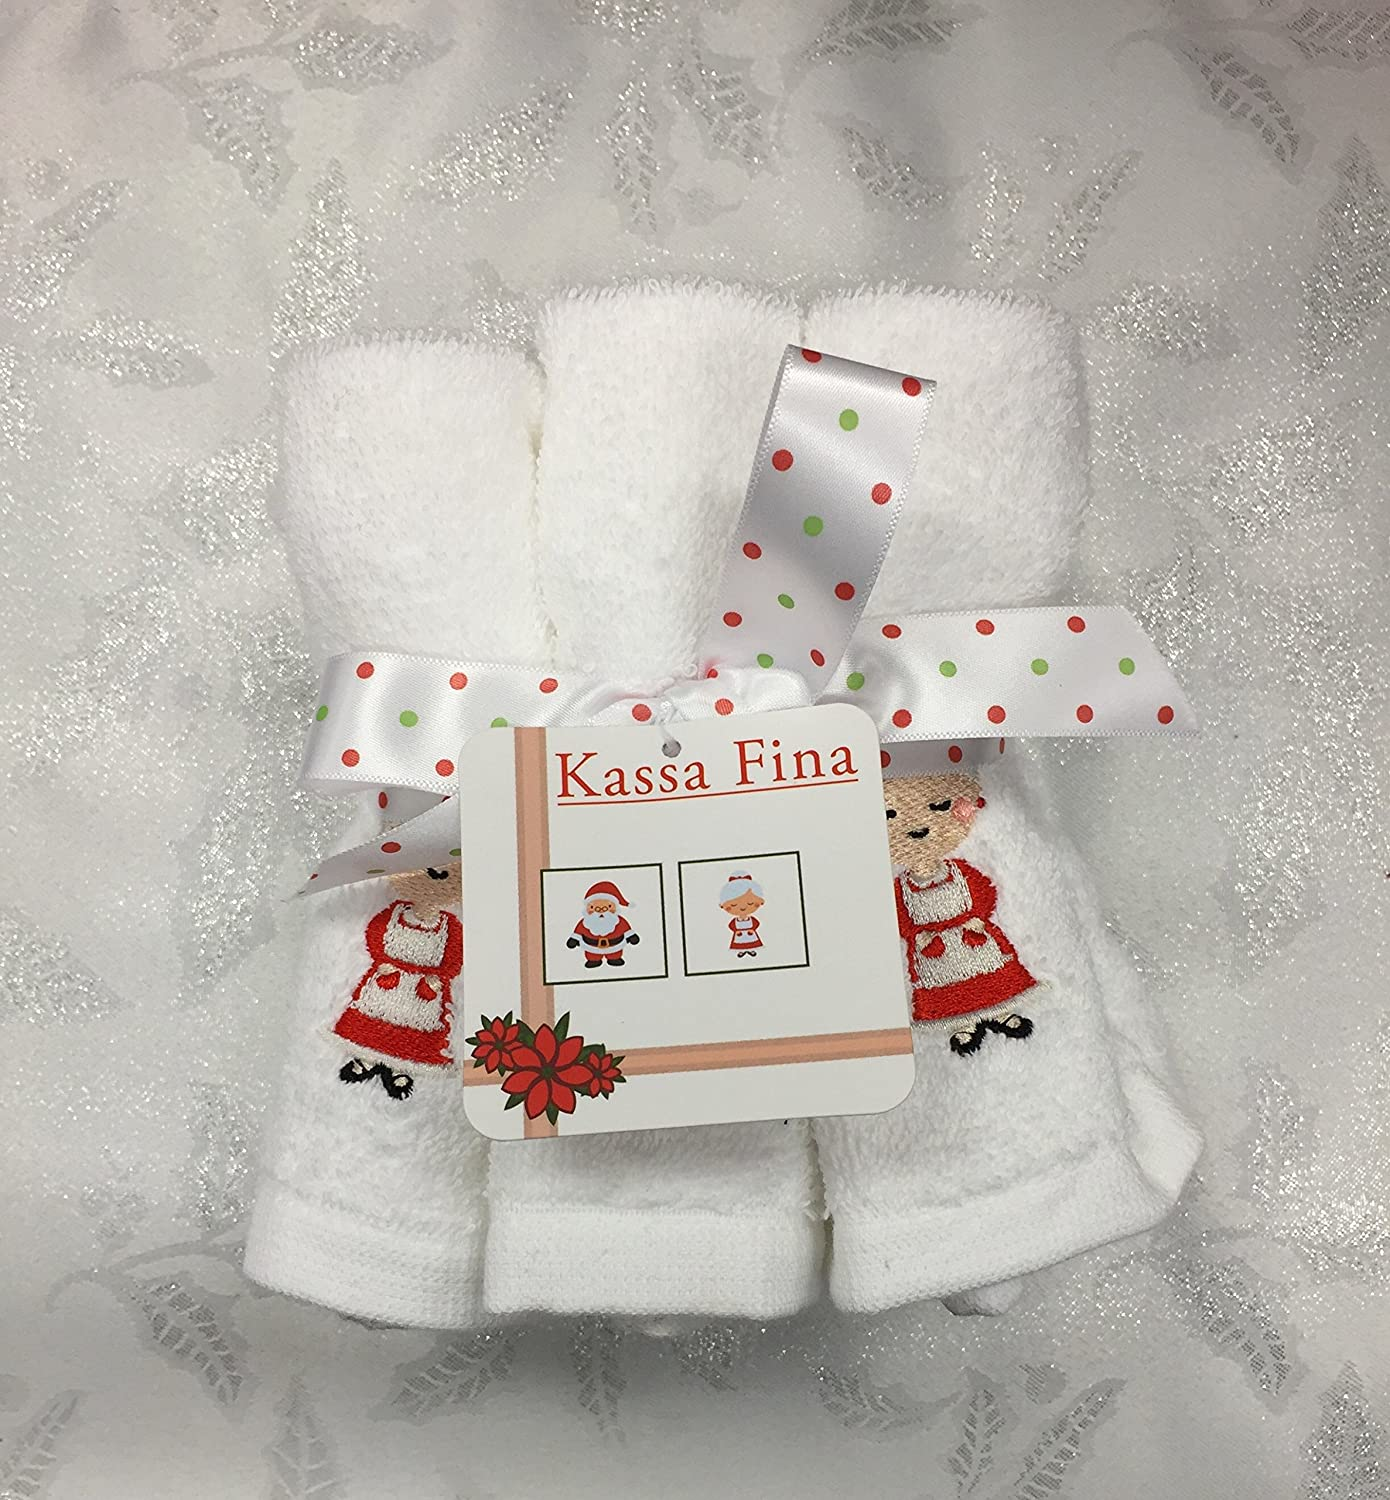 Amazon.com: Kassa Fina Christmas Home Collection Pack of 6 Embellished Wash Towels, Mr. And Mrs. Claus: Home & Kitchen